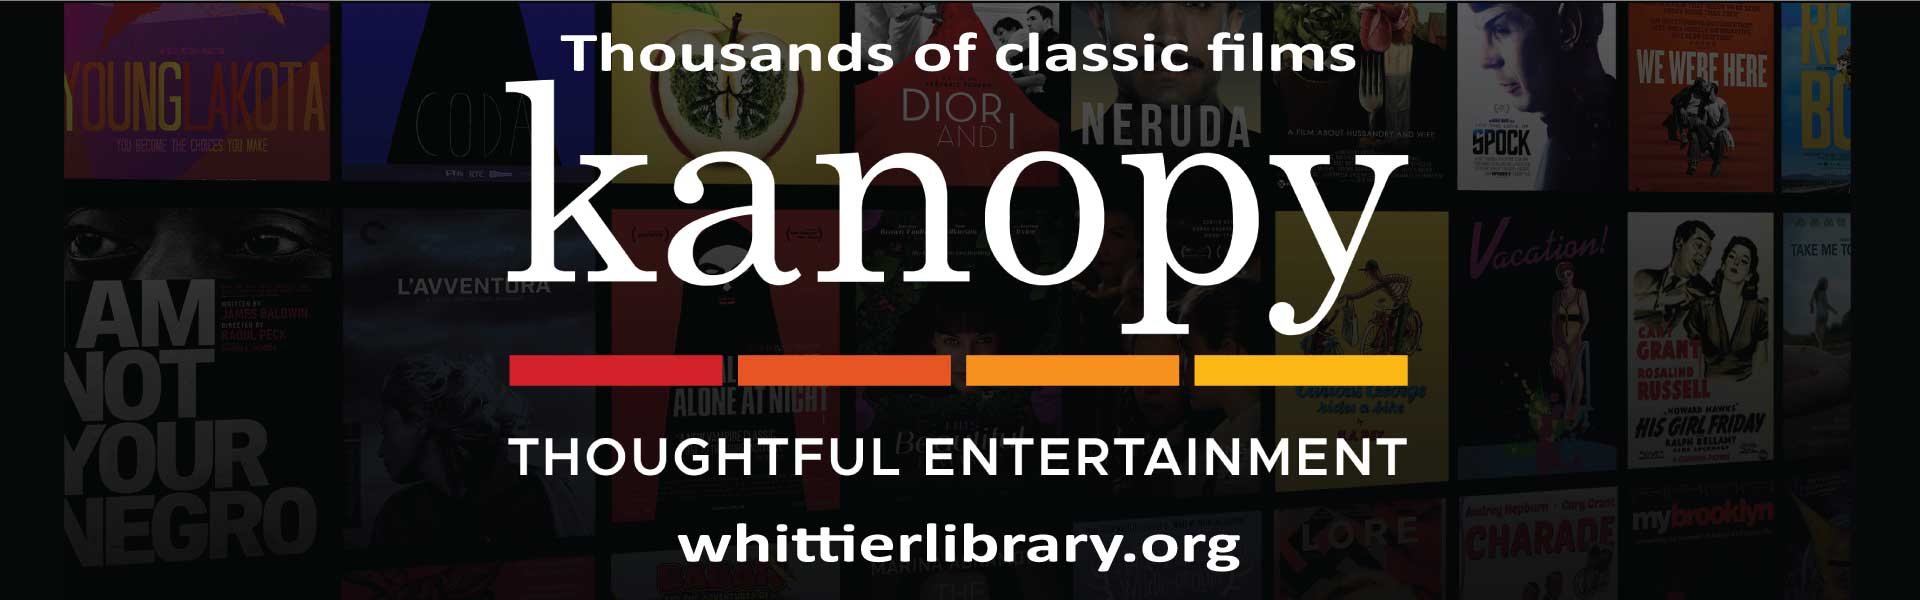 Kanopy-thousands of classic films whittierlibrary.org